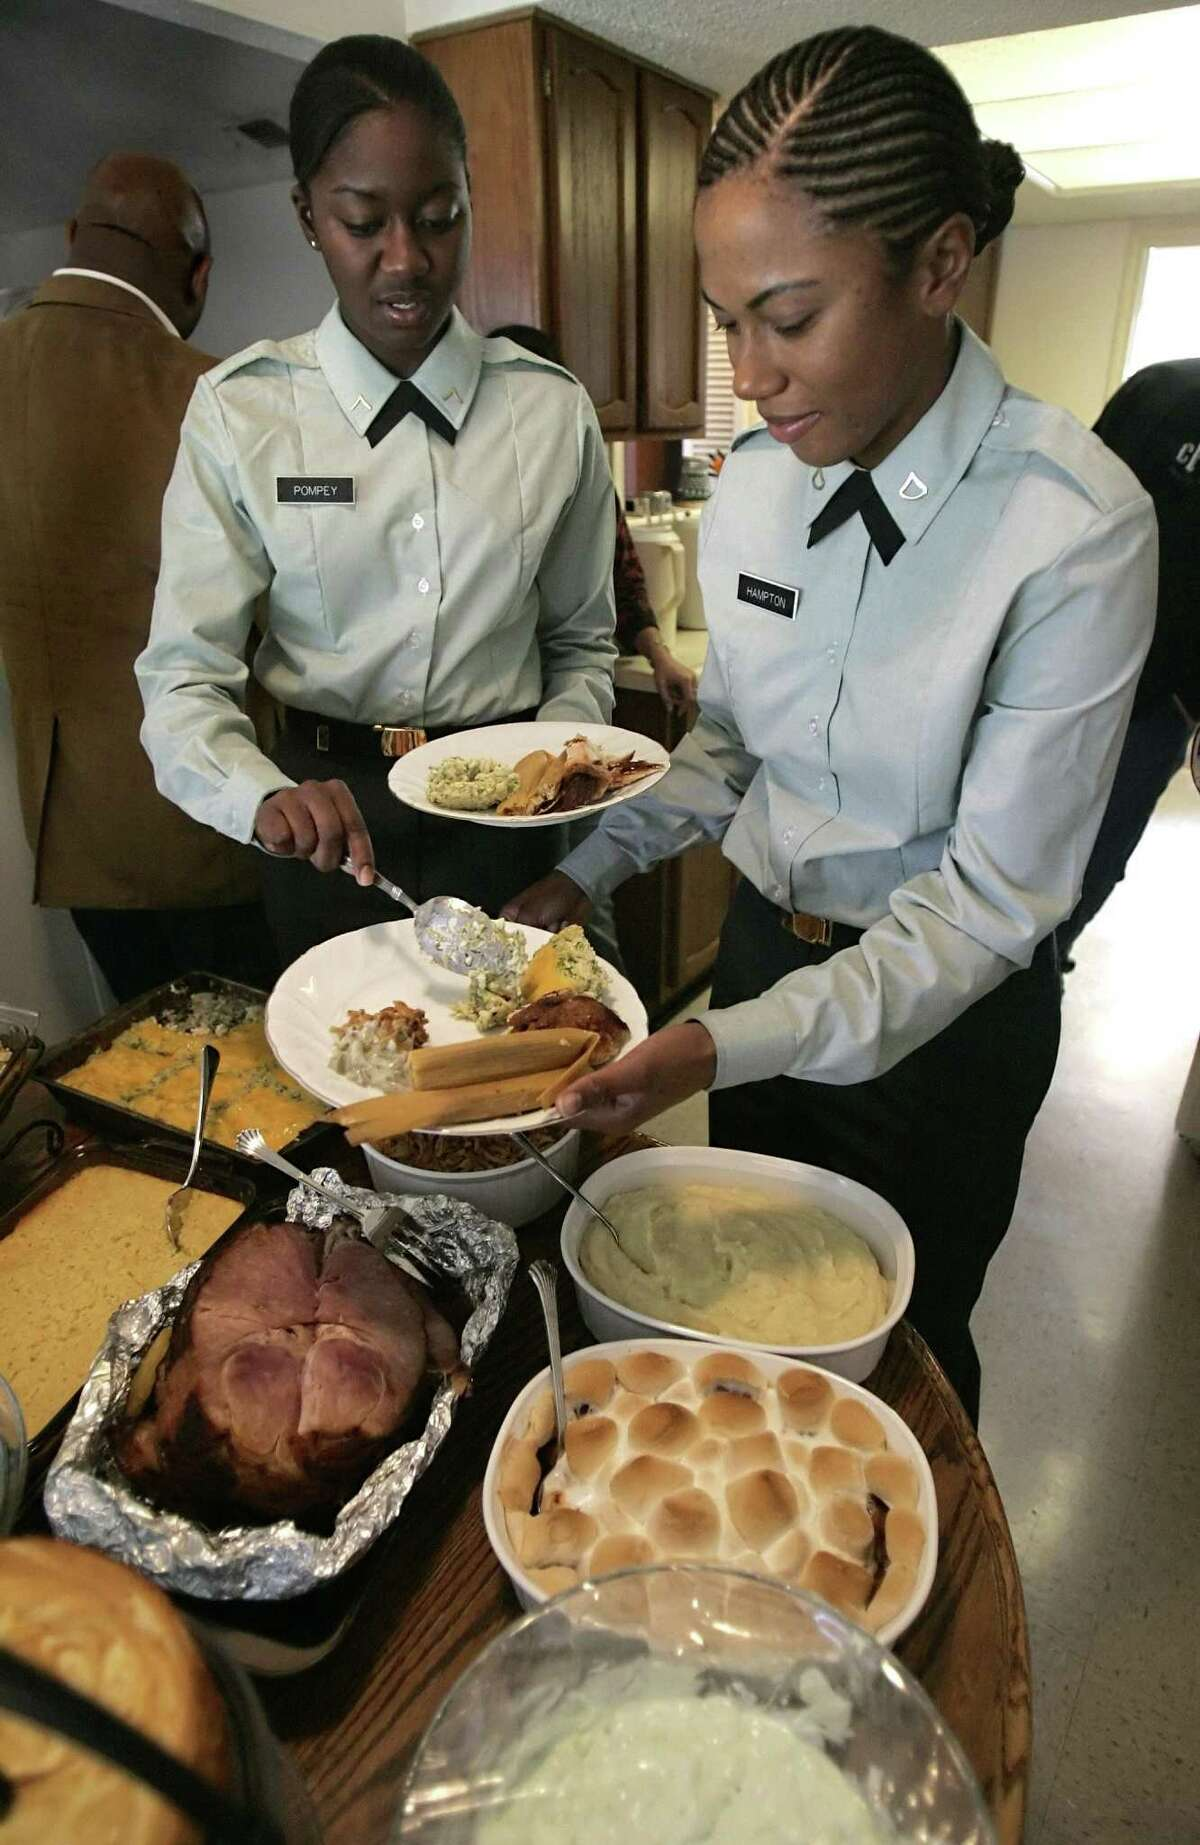 This file photo shows Ft. Sam Houston trainees enjoying Thanksgiving dinner as they spend the day with a local family as part of a program that pairs trainees with local families for the holiday. Happy Thanksgiving.